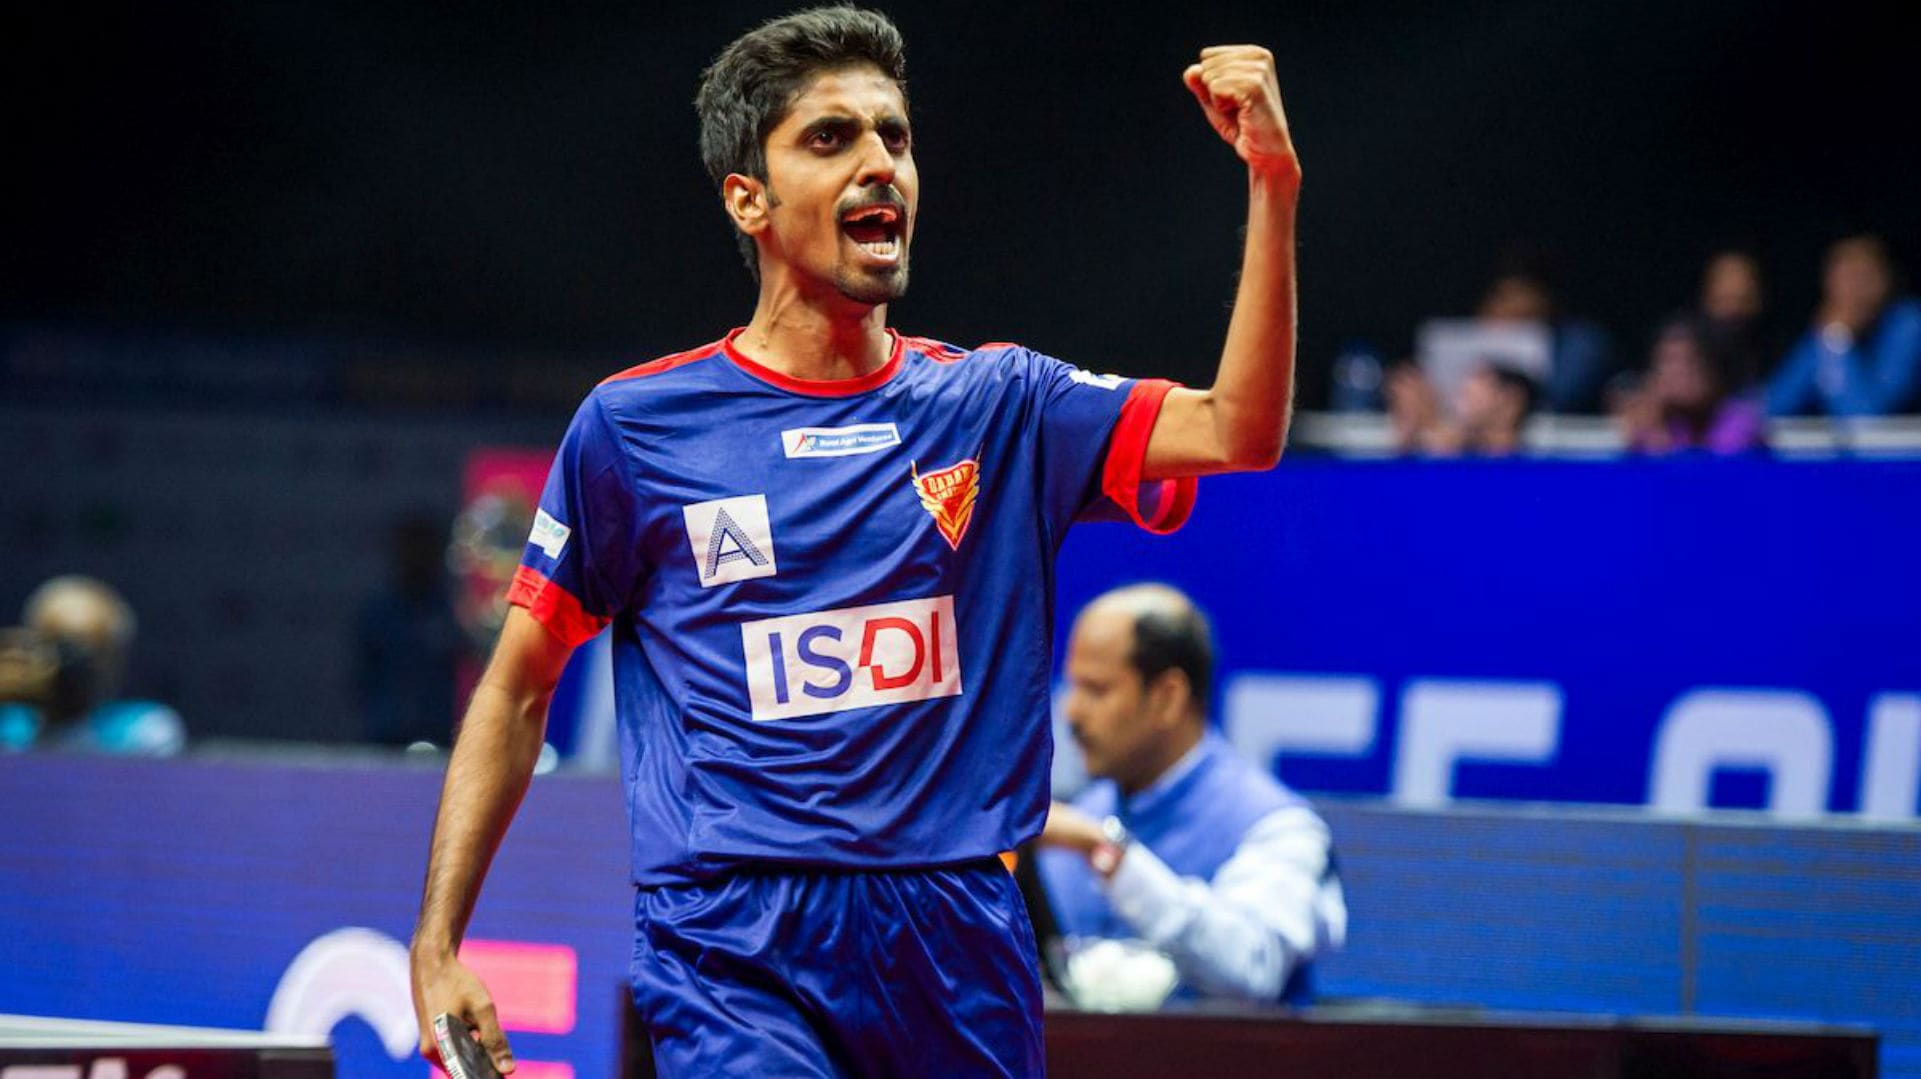 Talented and improving: Indian Table Tennis on the right track